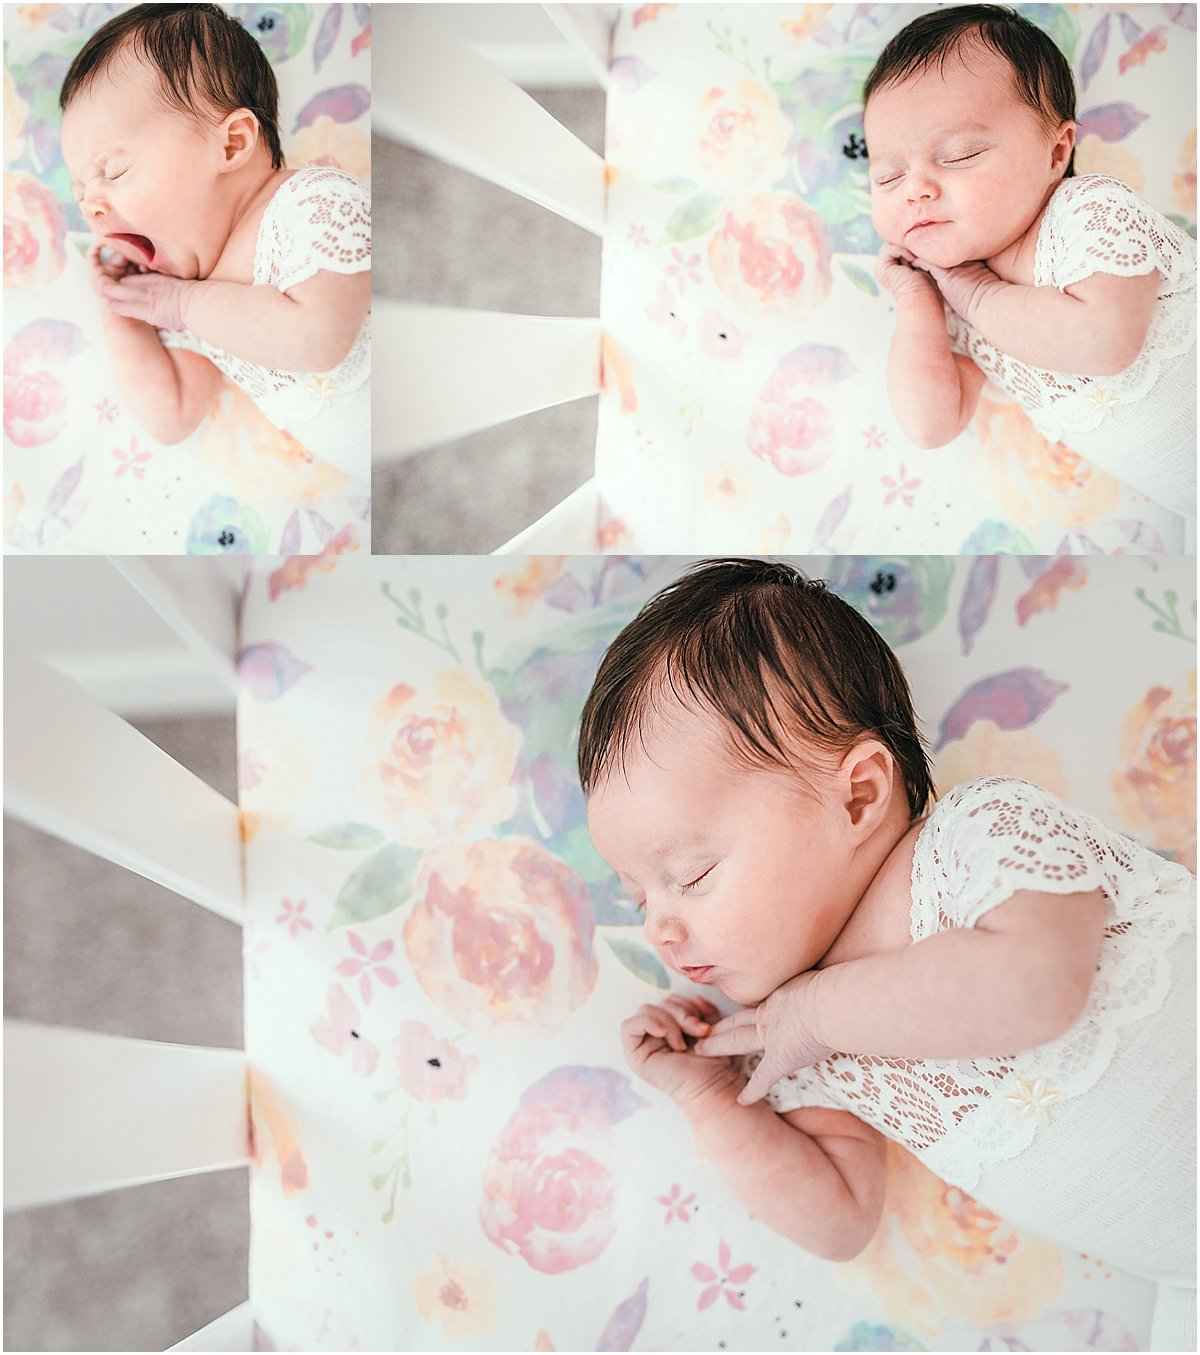 Ashley_Rogers_Photography_Orlando_Non-Posed_Newborn_Family_Lifestyle_Photographer_0882.jpg